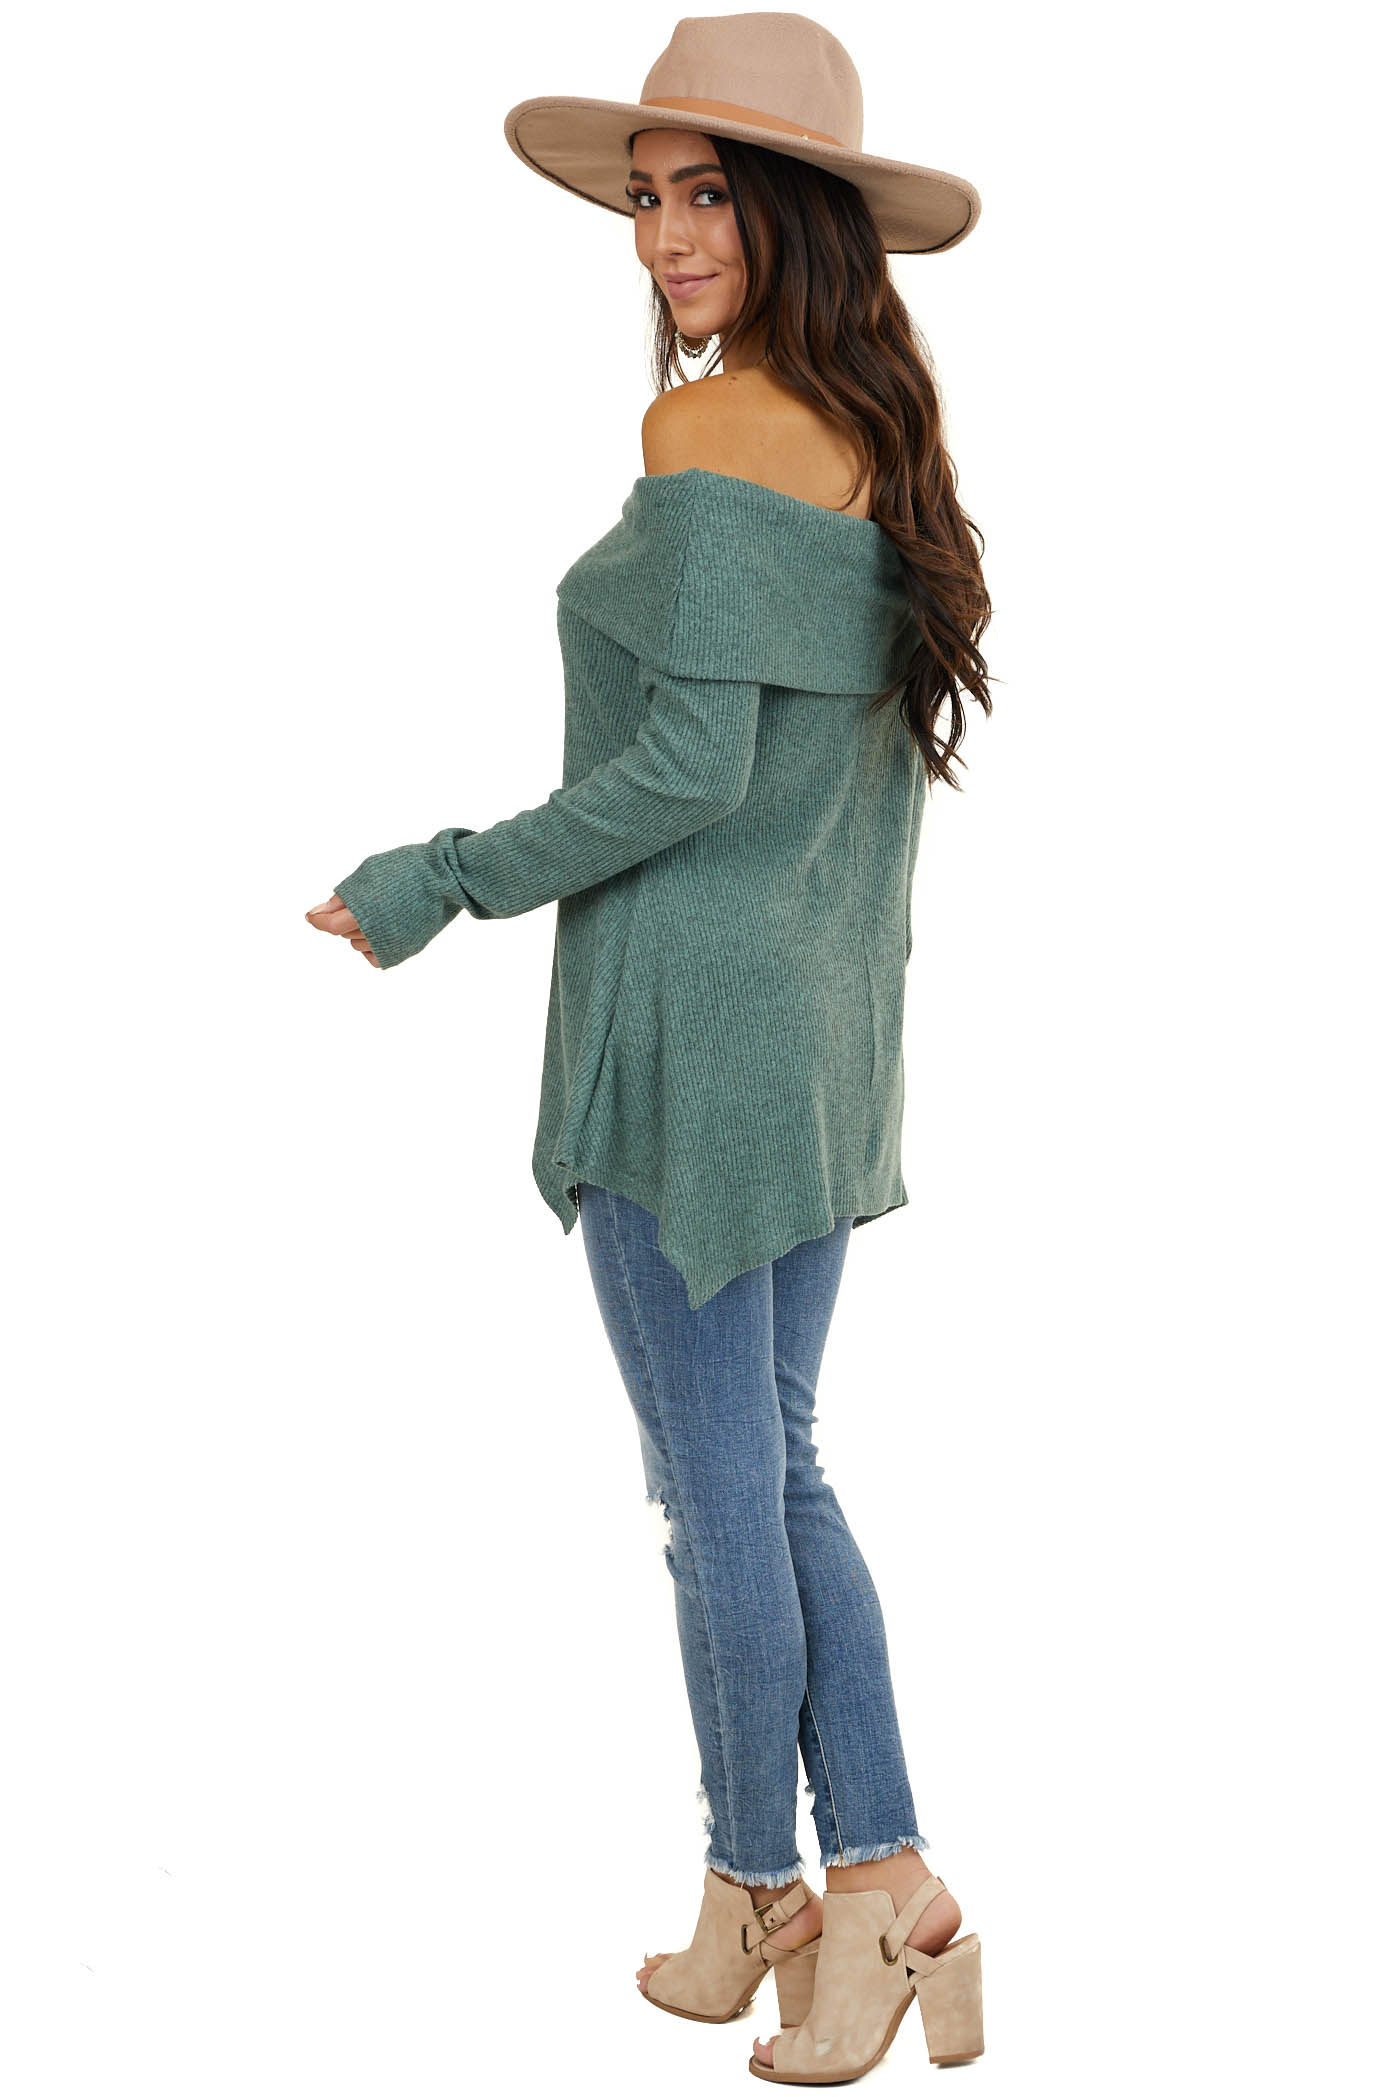 Bright Sage Cowl Off the Shoulder Top with Shark Bite Hem